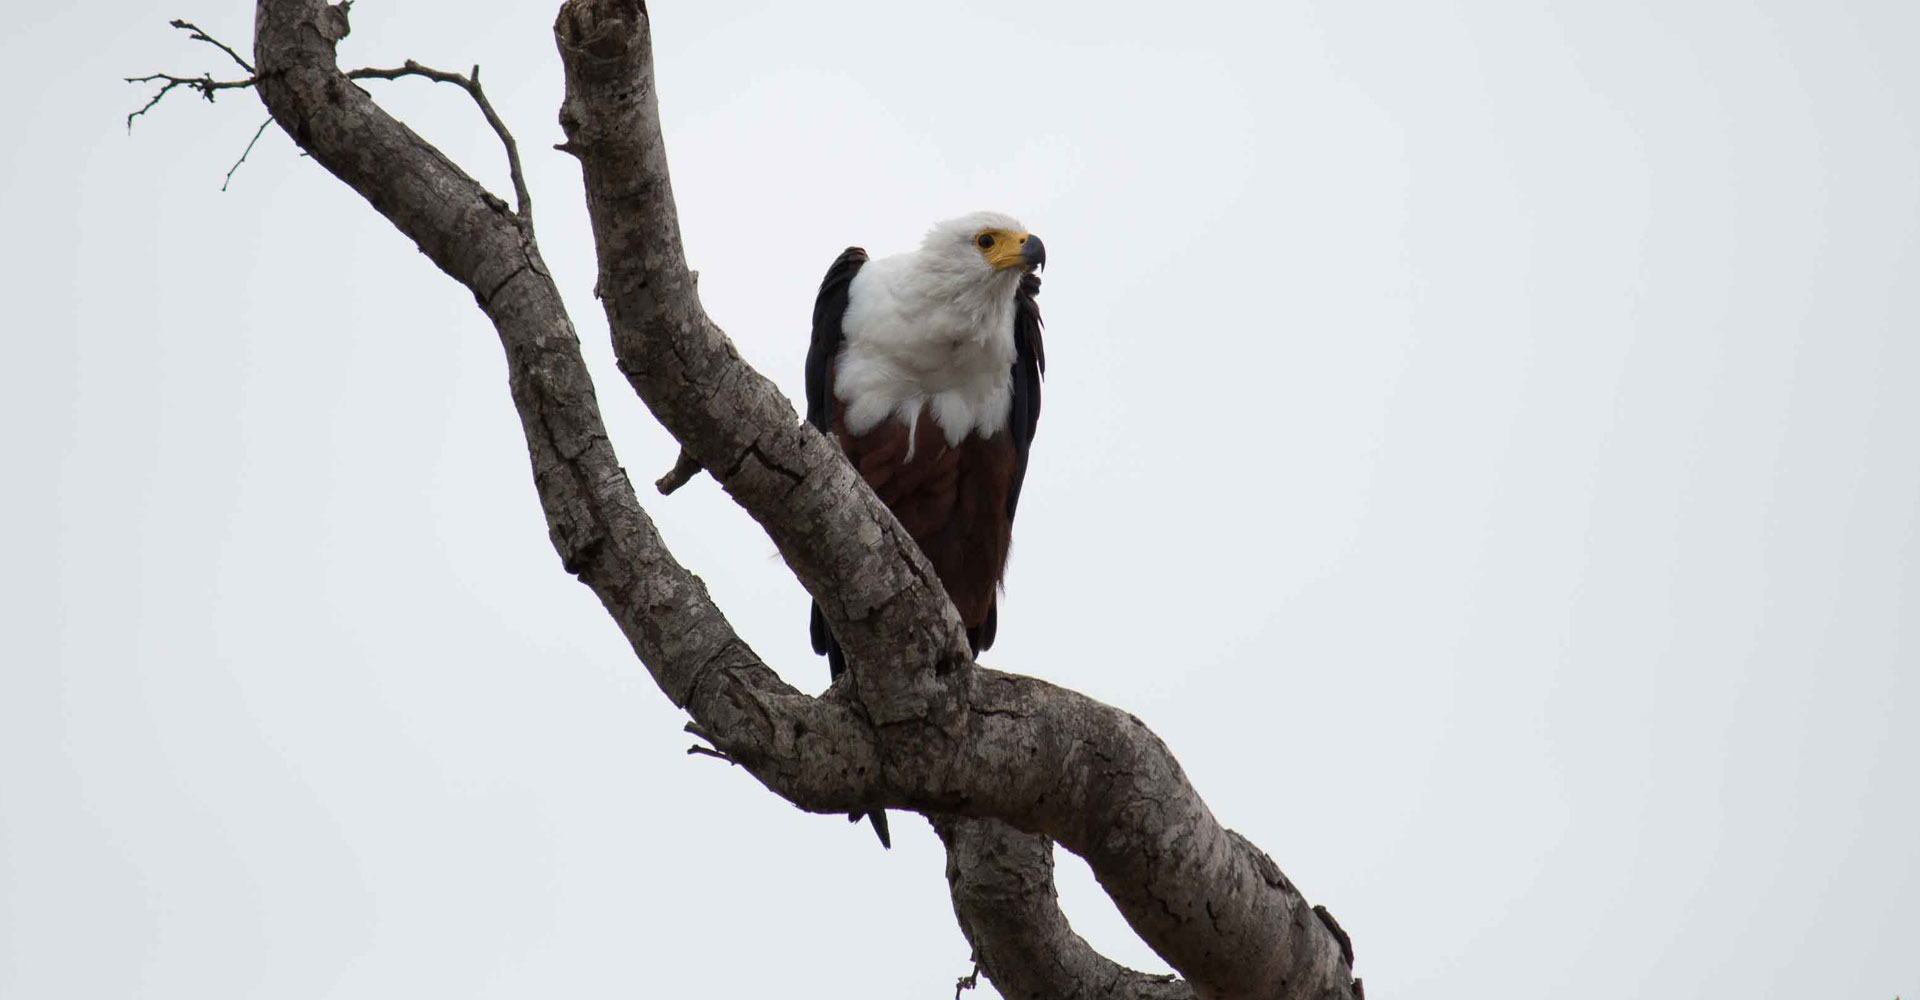 Photo of a fish eagle in Kruger park by Mabeco tours